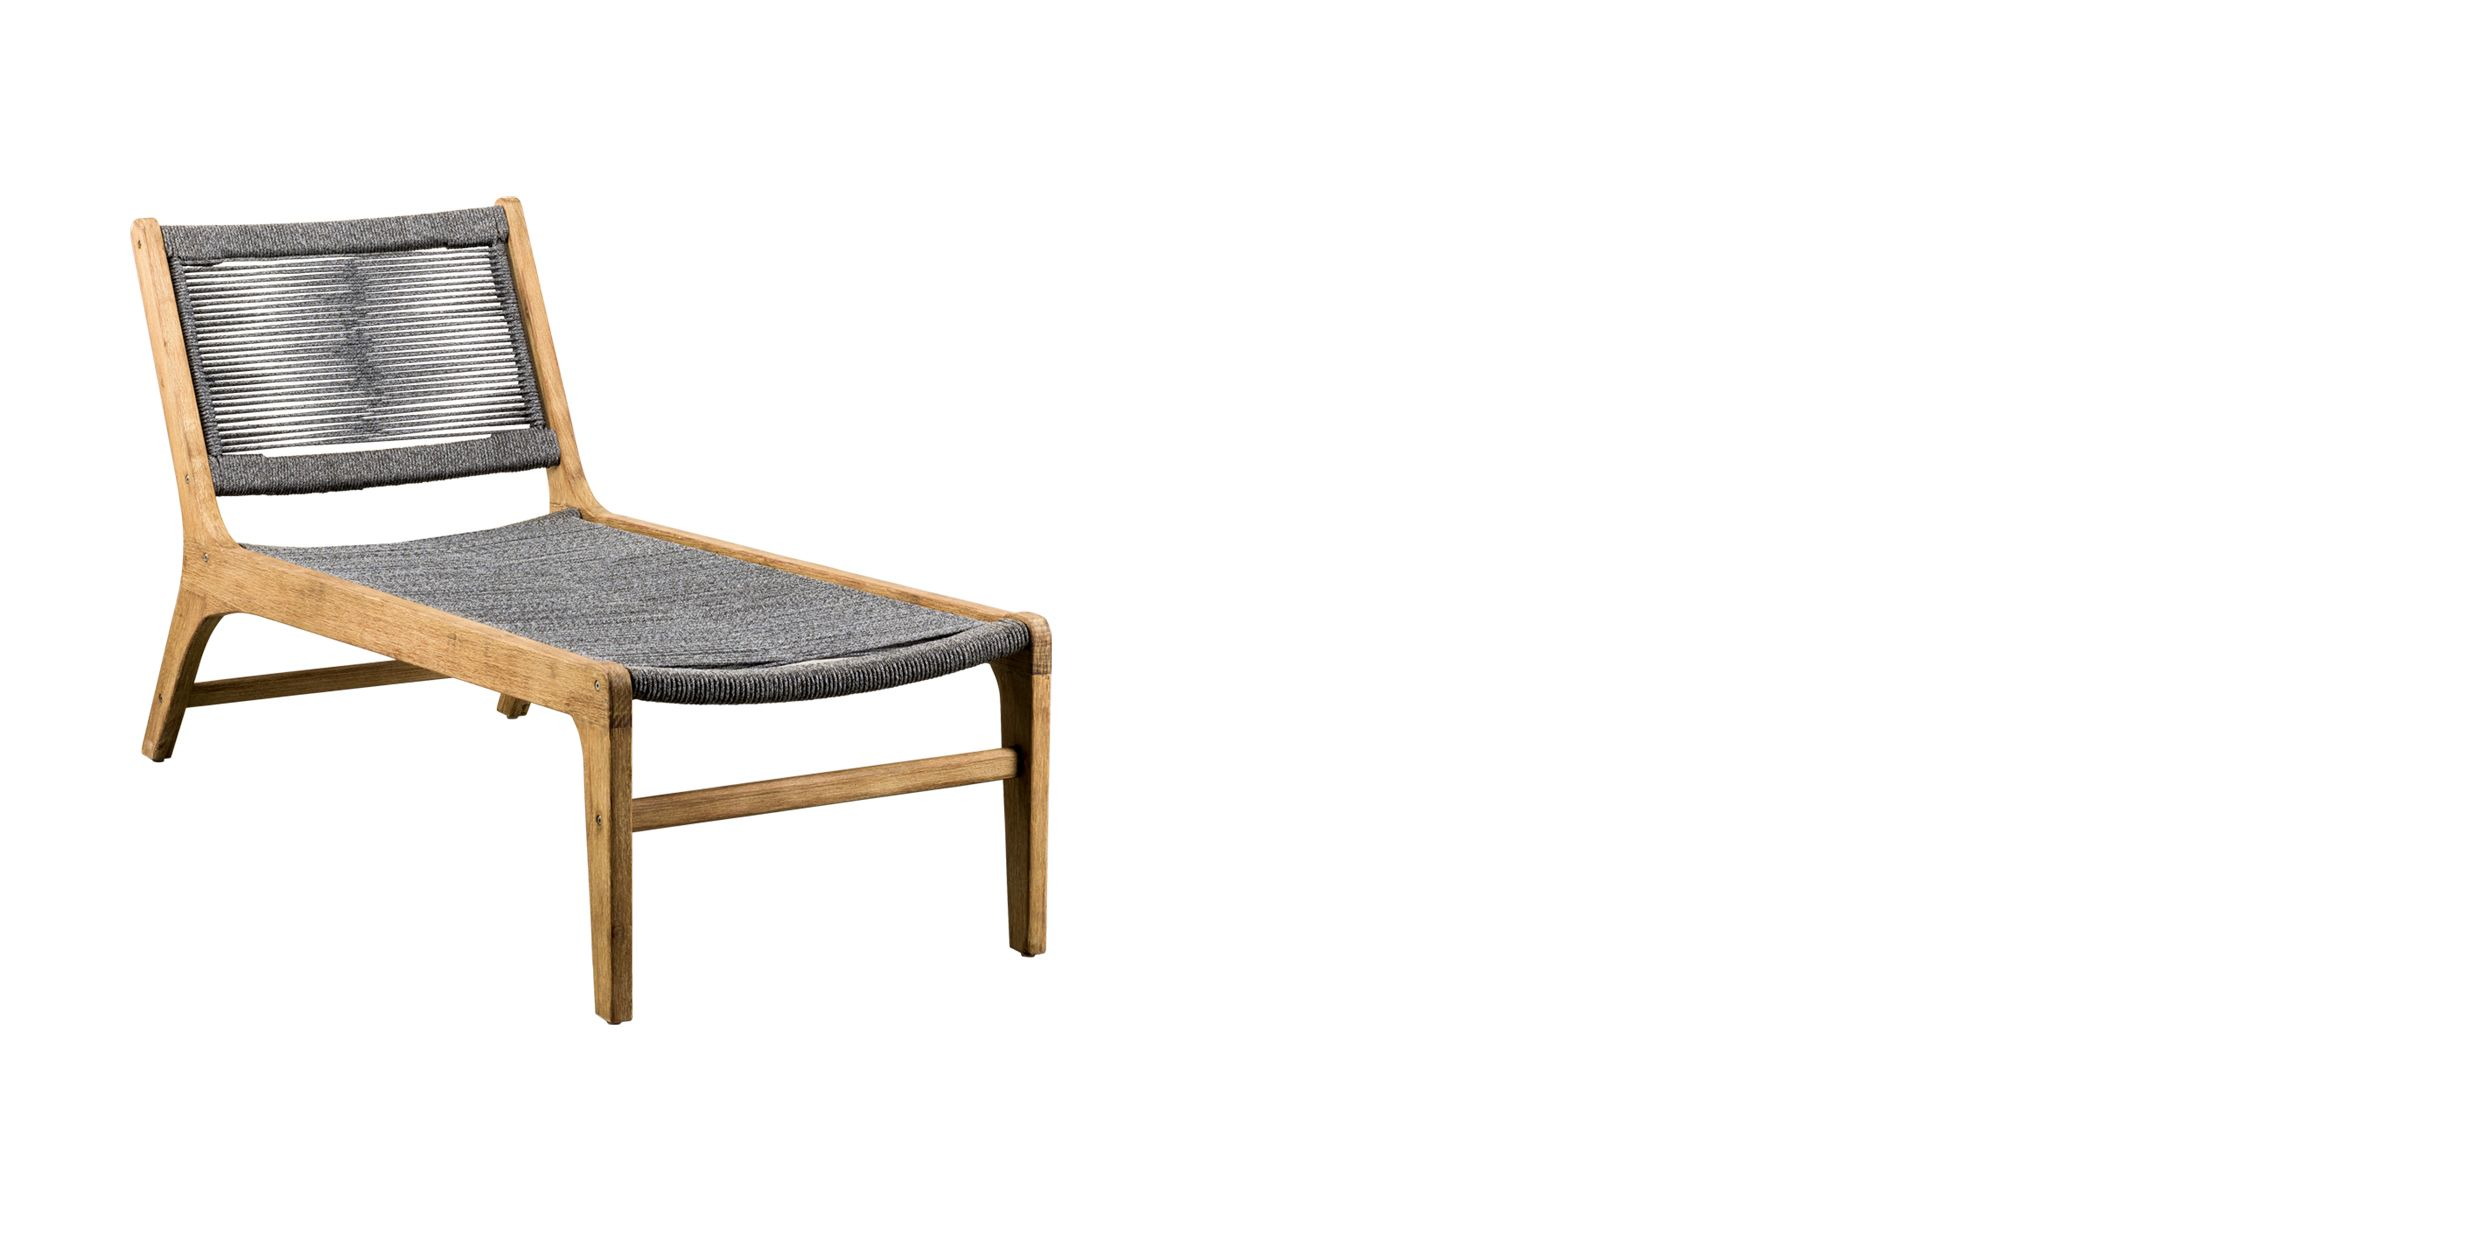 Suns Itea Lounger Suns Grey Collection